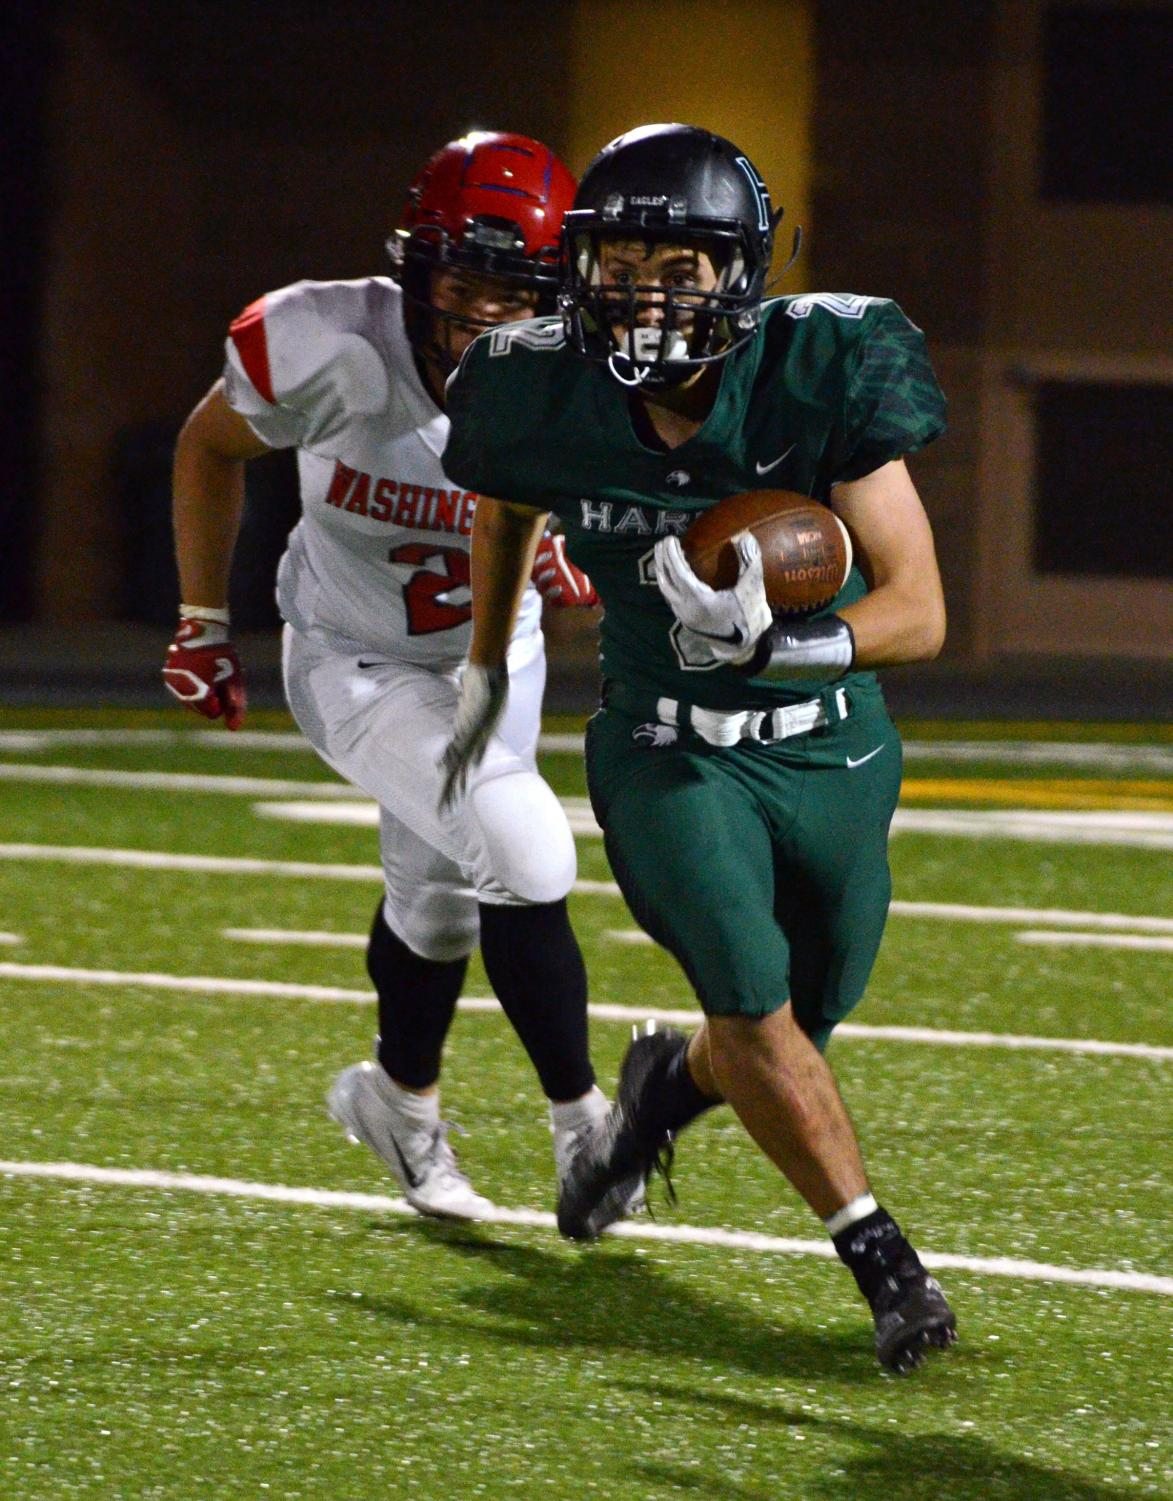 Runningback+Devin+Keller+%2812%29+rushes+during+the+third+quarter.+Devin+scored+Harker%27s+first+points+of+the+game+when+he+ran+for+a+30-yard+touchdown+in+the+second+quarter.+